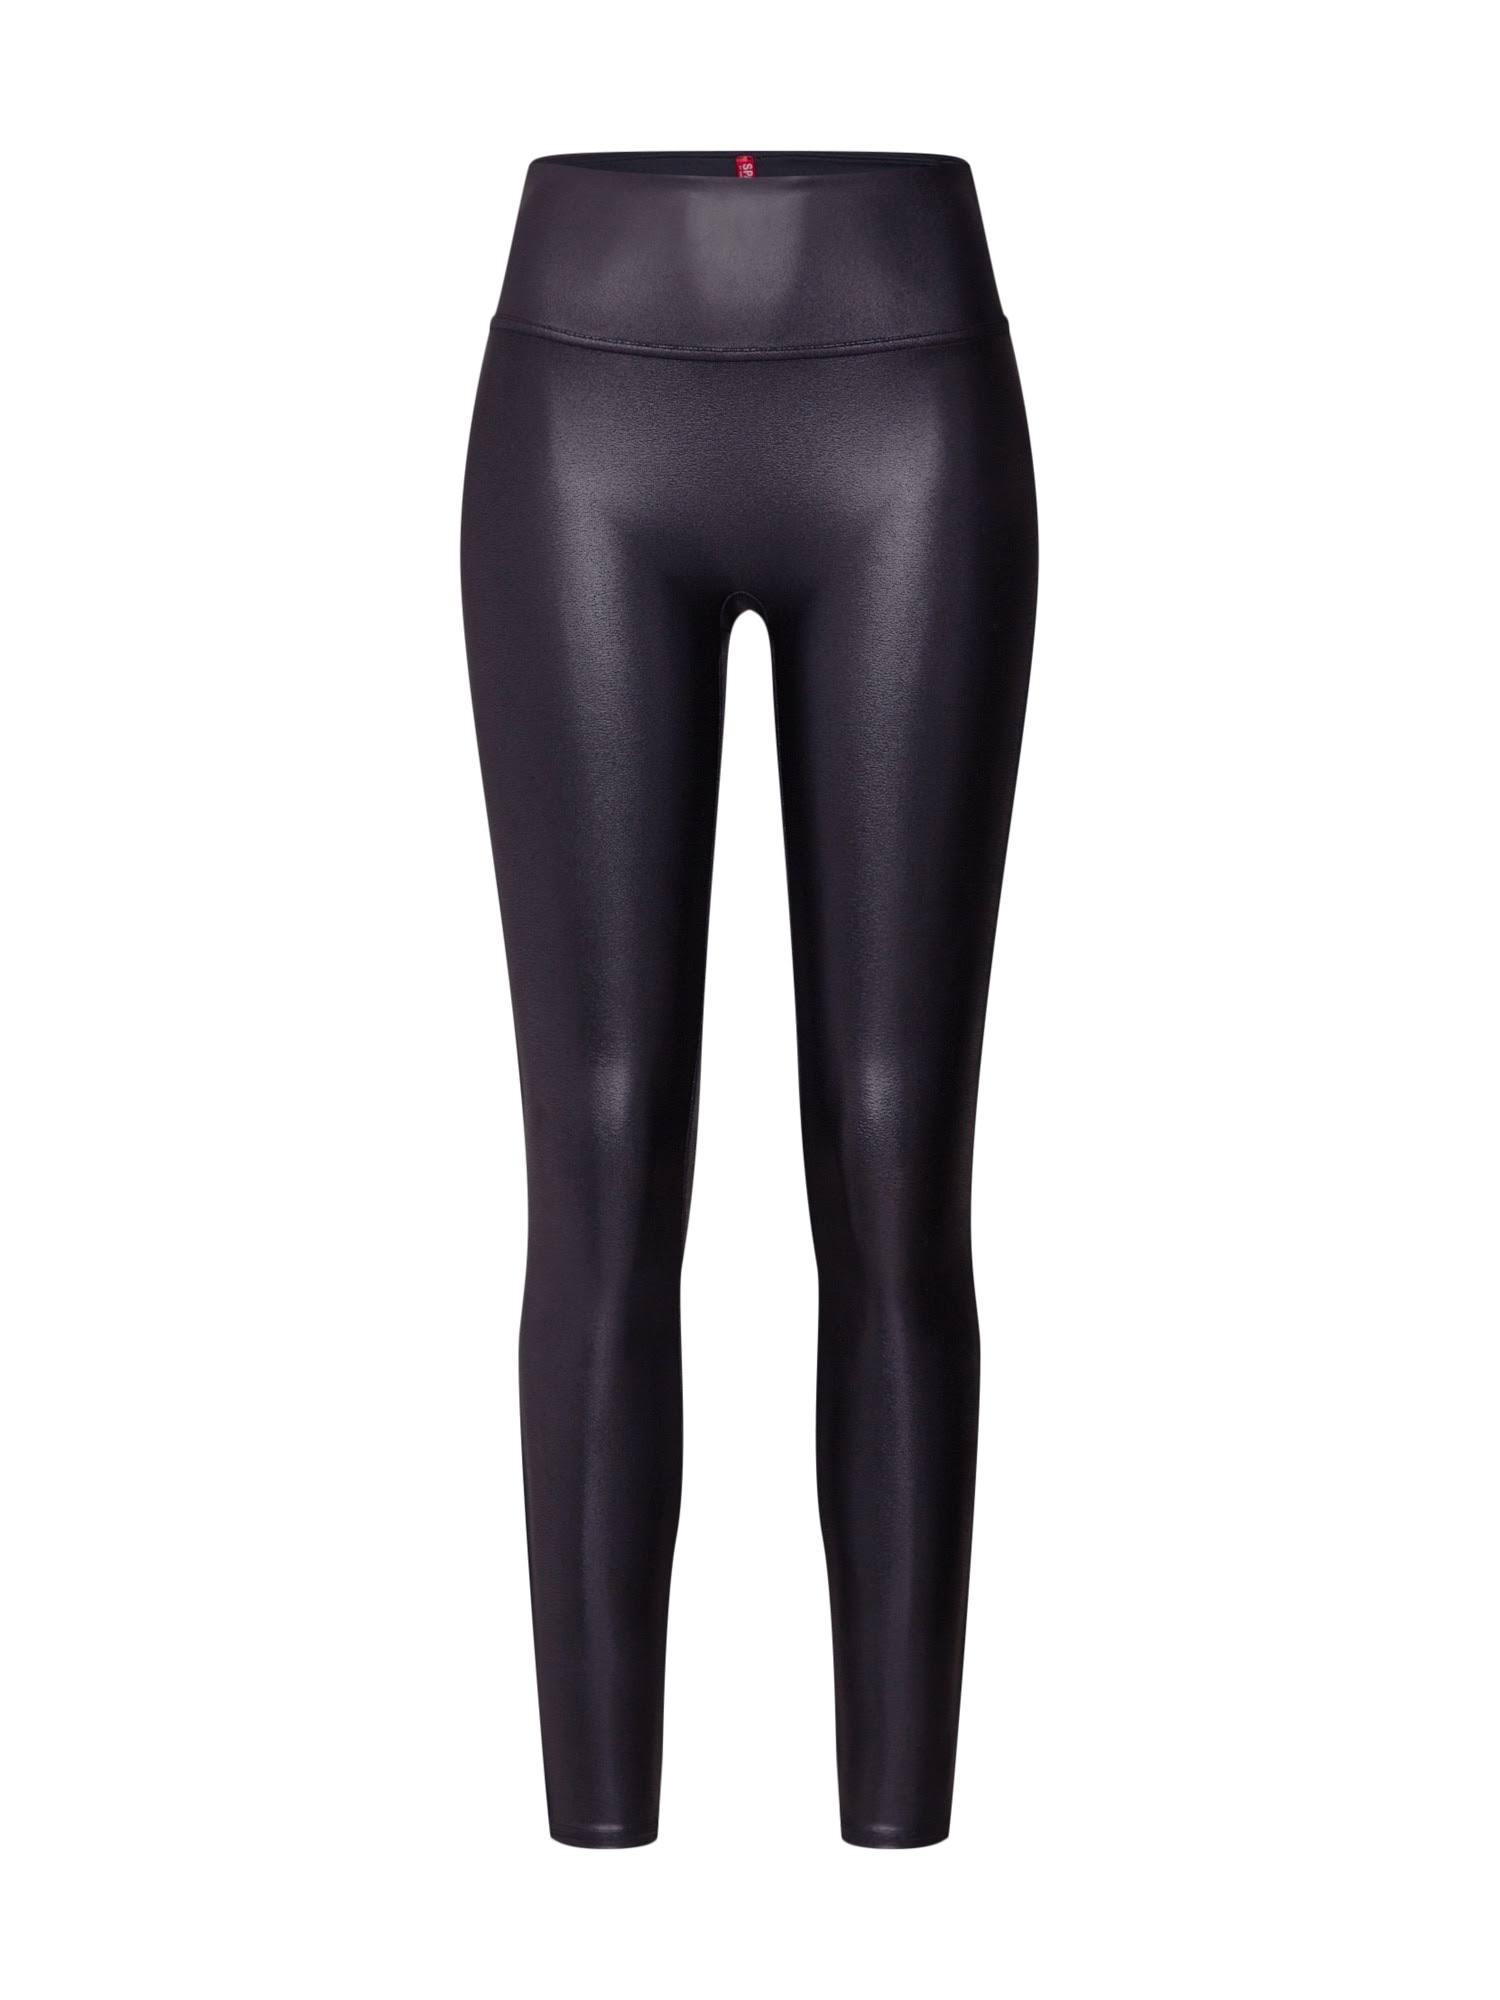 Spanx Faux Leather Leggings - Black, Small